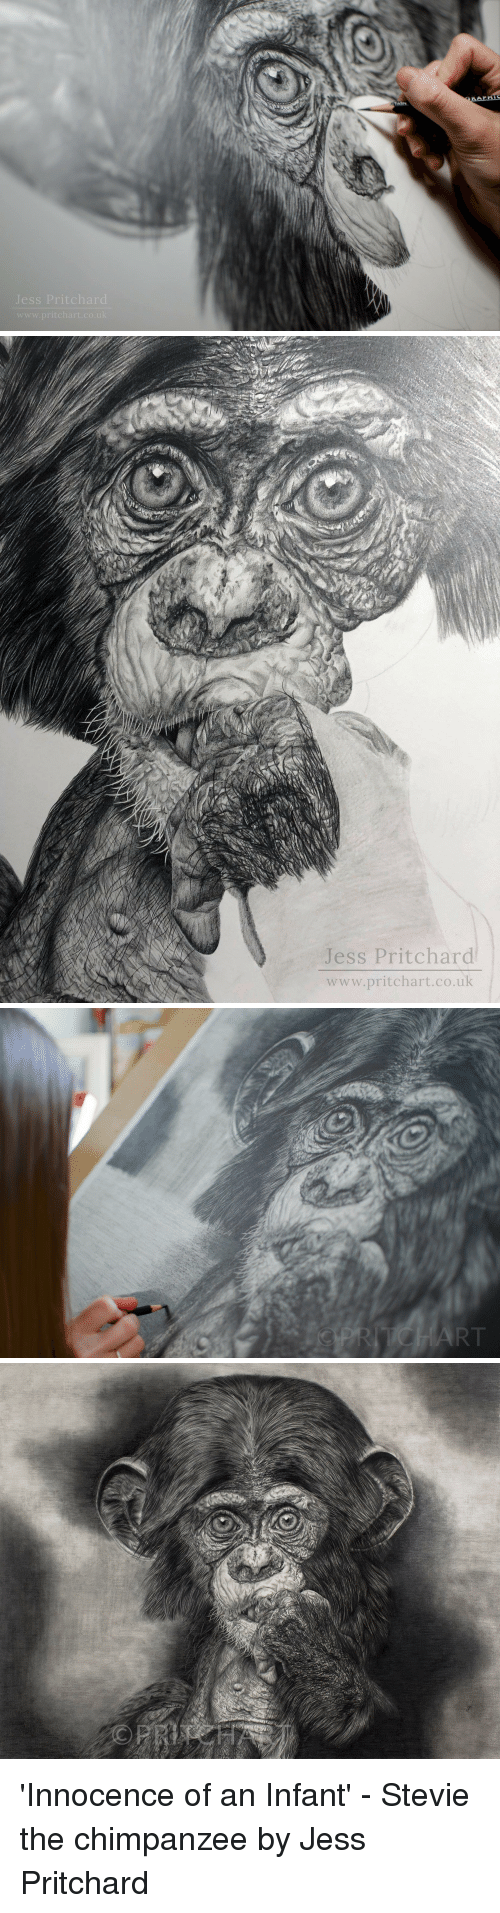 Chimpanzee, Www, and Jess: Jess Pritchar  www.pritchart.co.uk   Jess Pritchard  www.pritchart.co.uk 'Innocence of an Infant' - Stevie the chimpanzee by Jess Pritchard